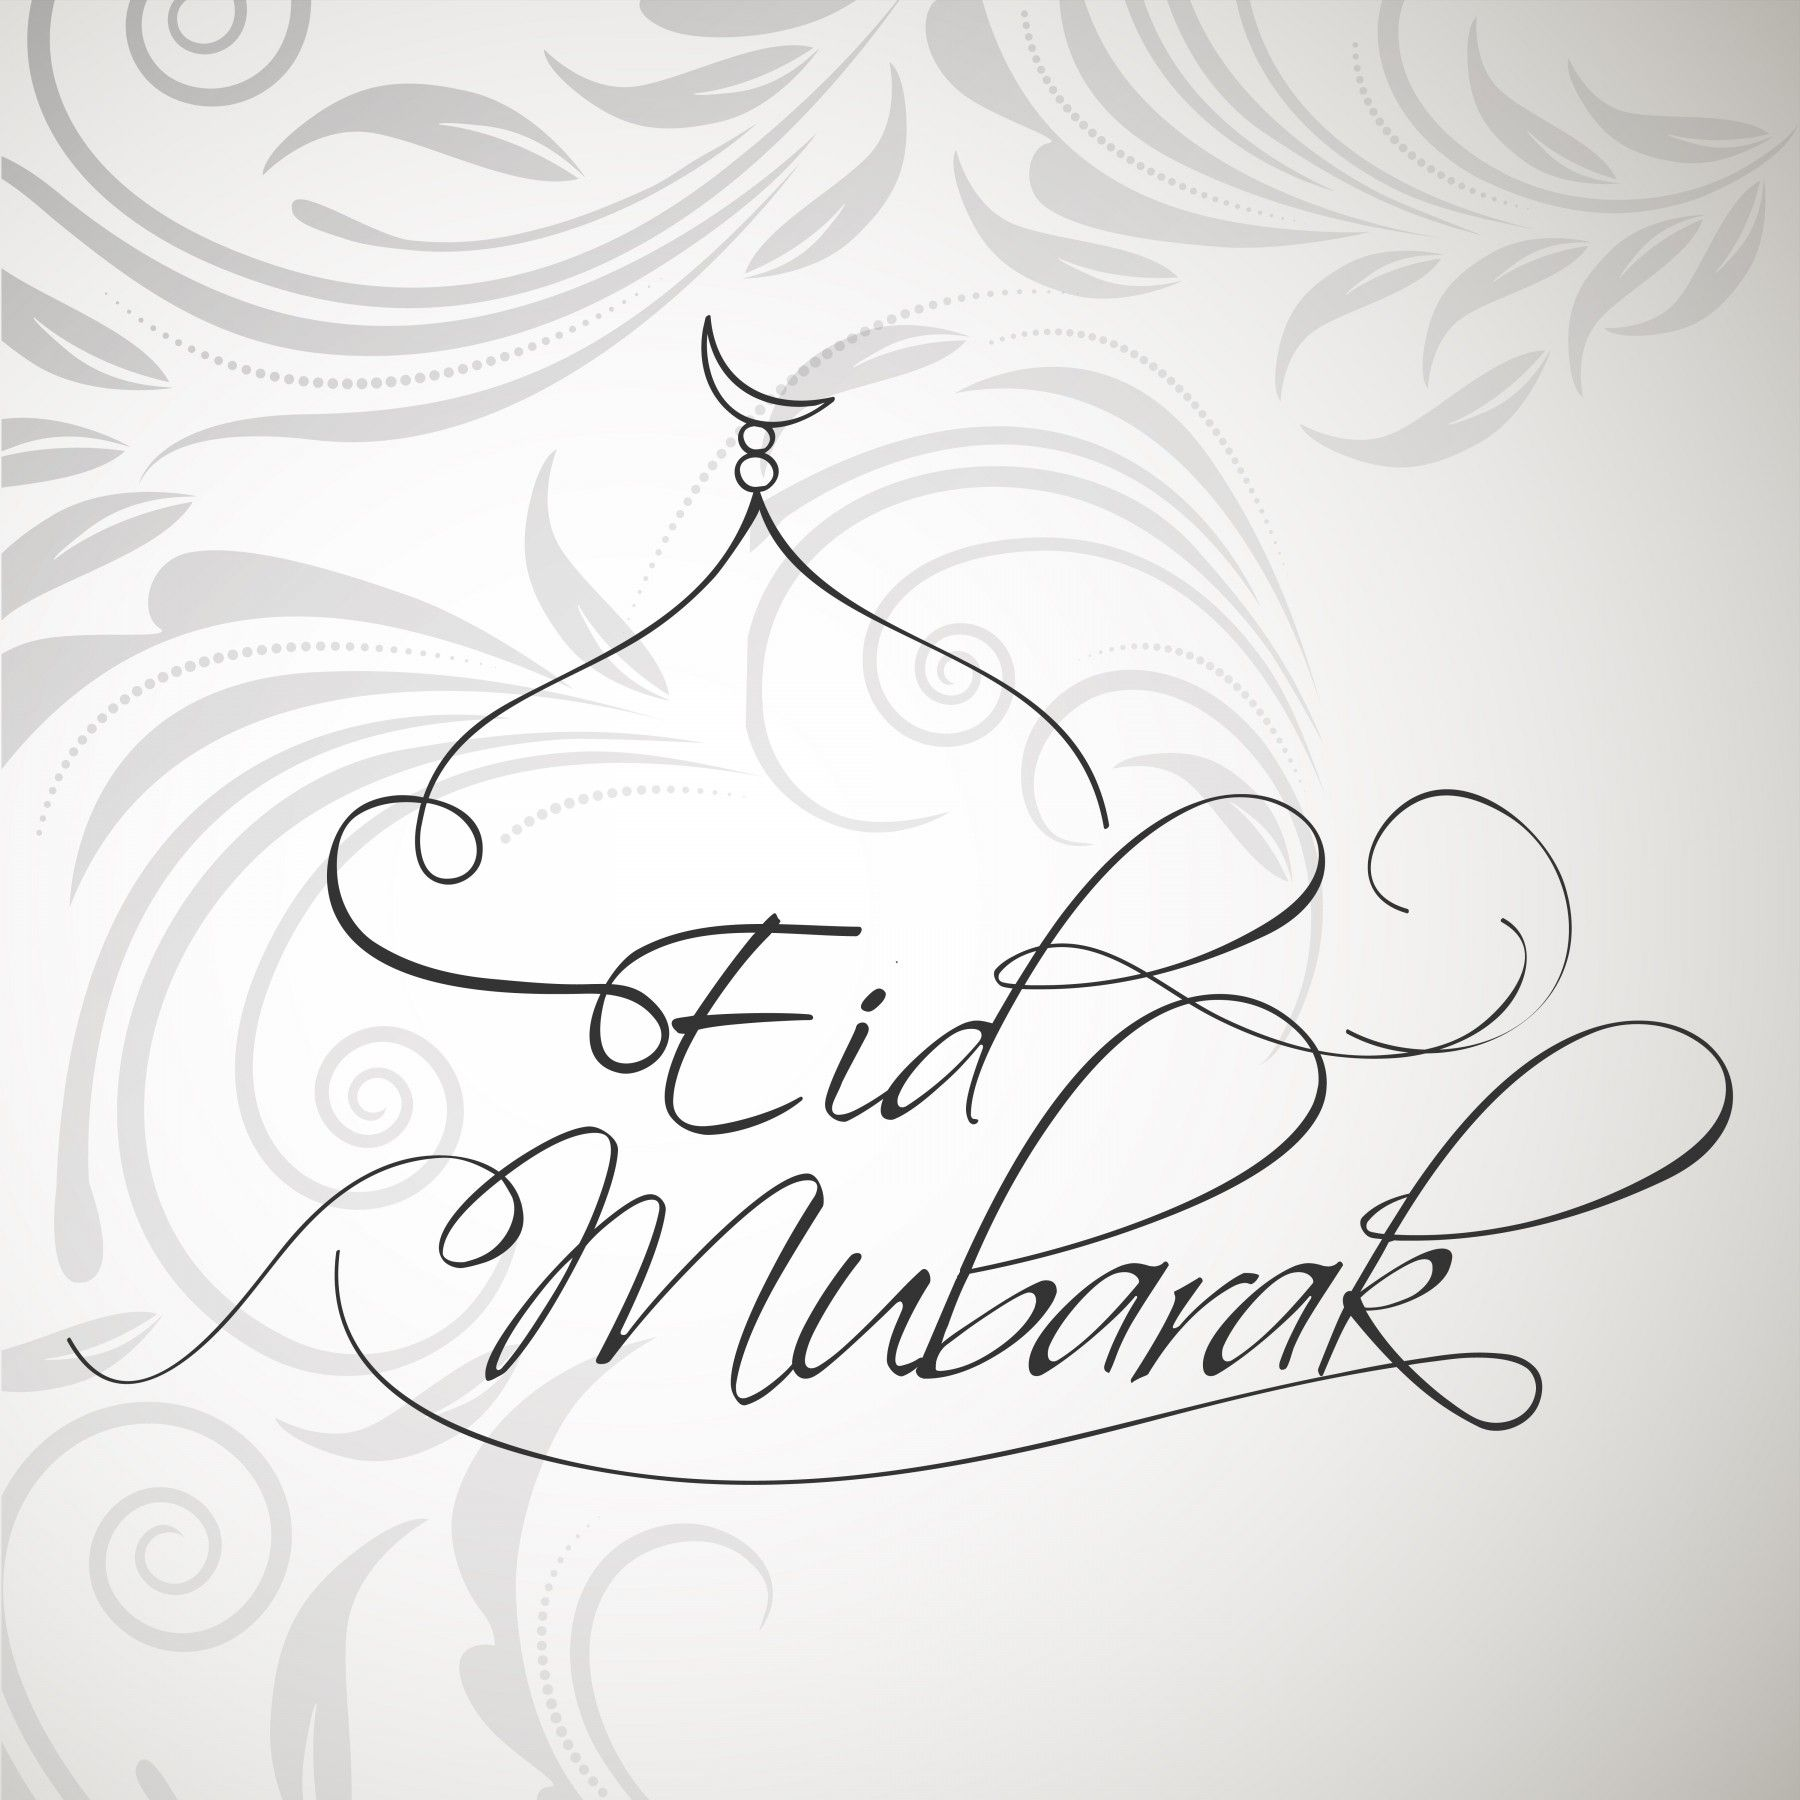 25 Eid Mubarak 2018 Wallpapers Images Cards Kartu Inspirasi